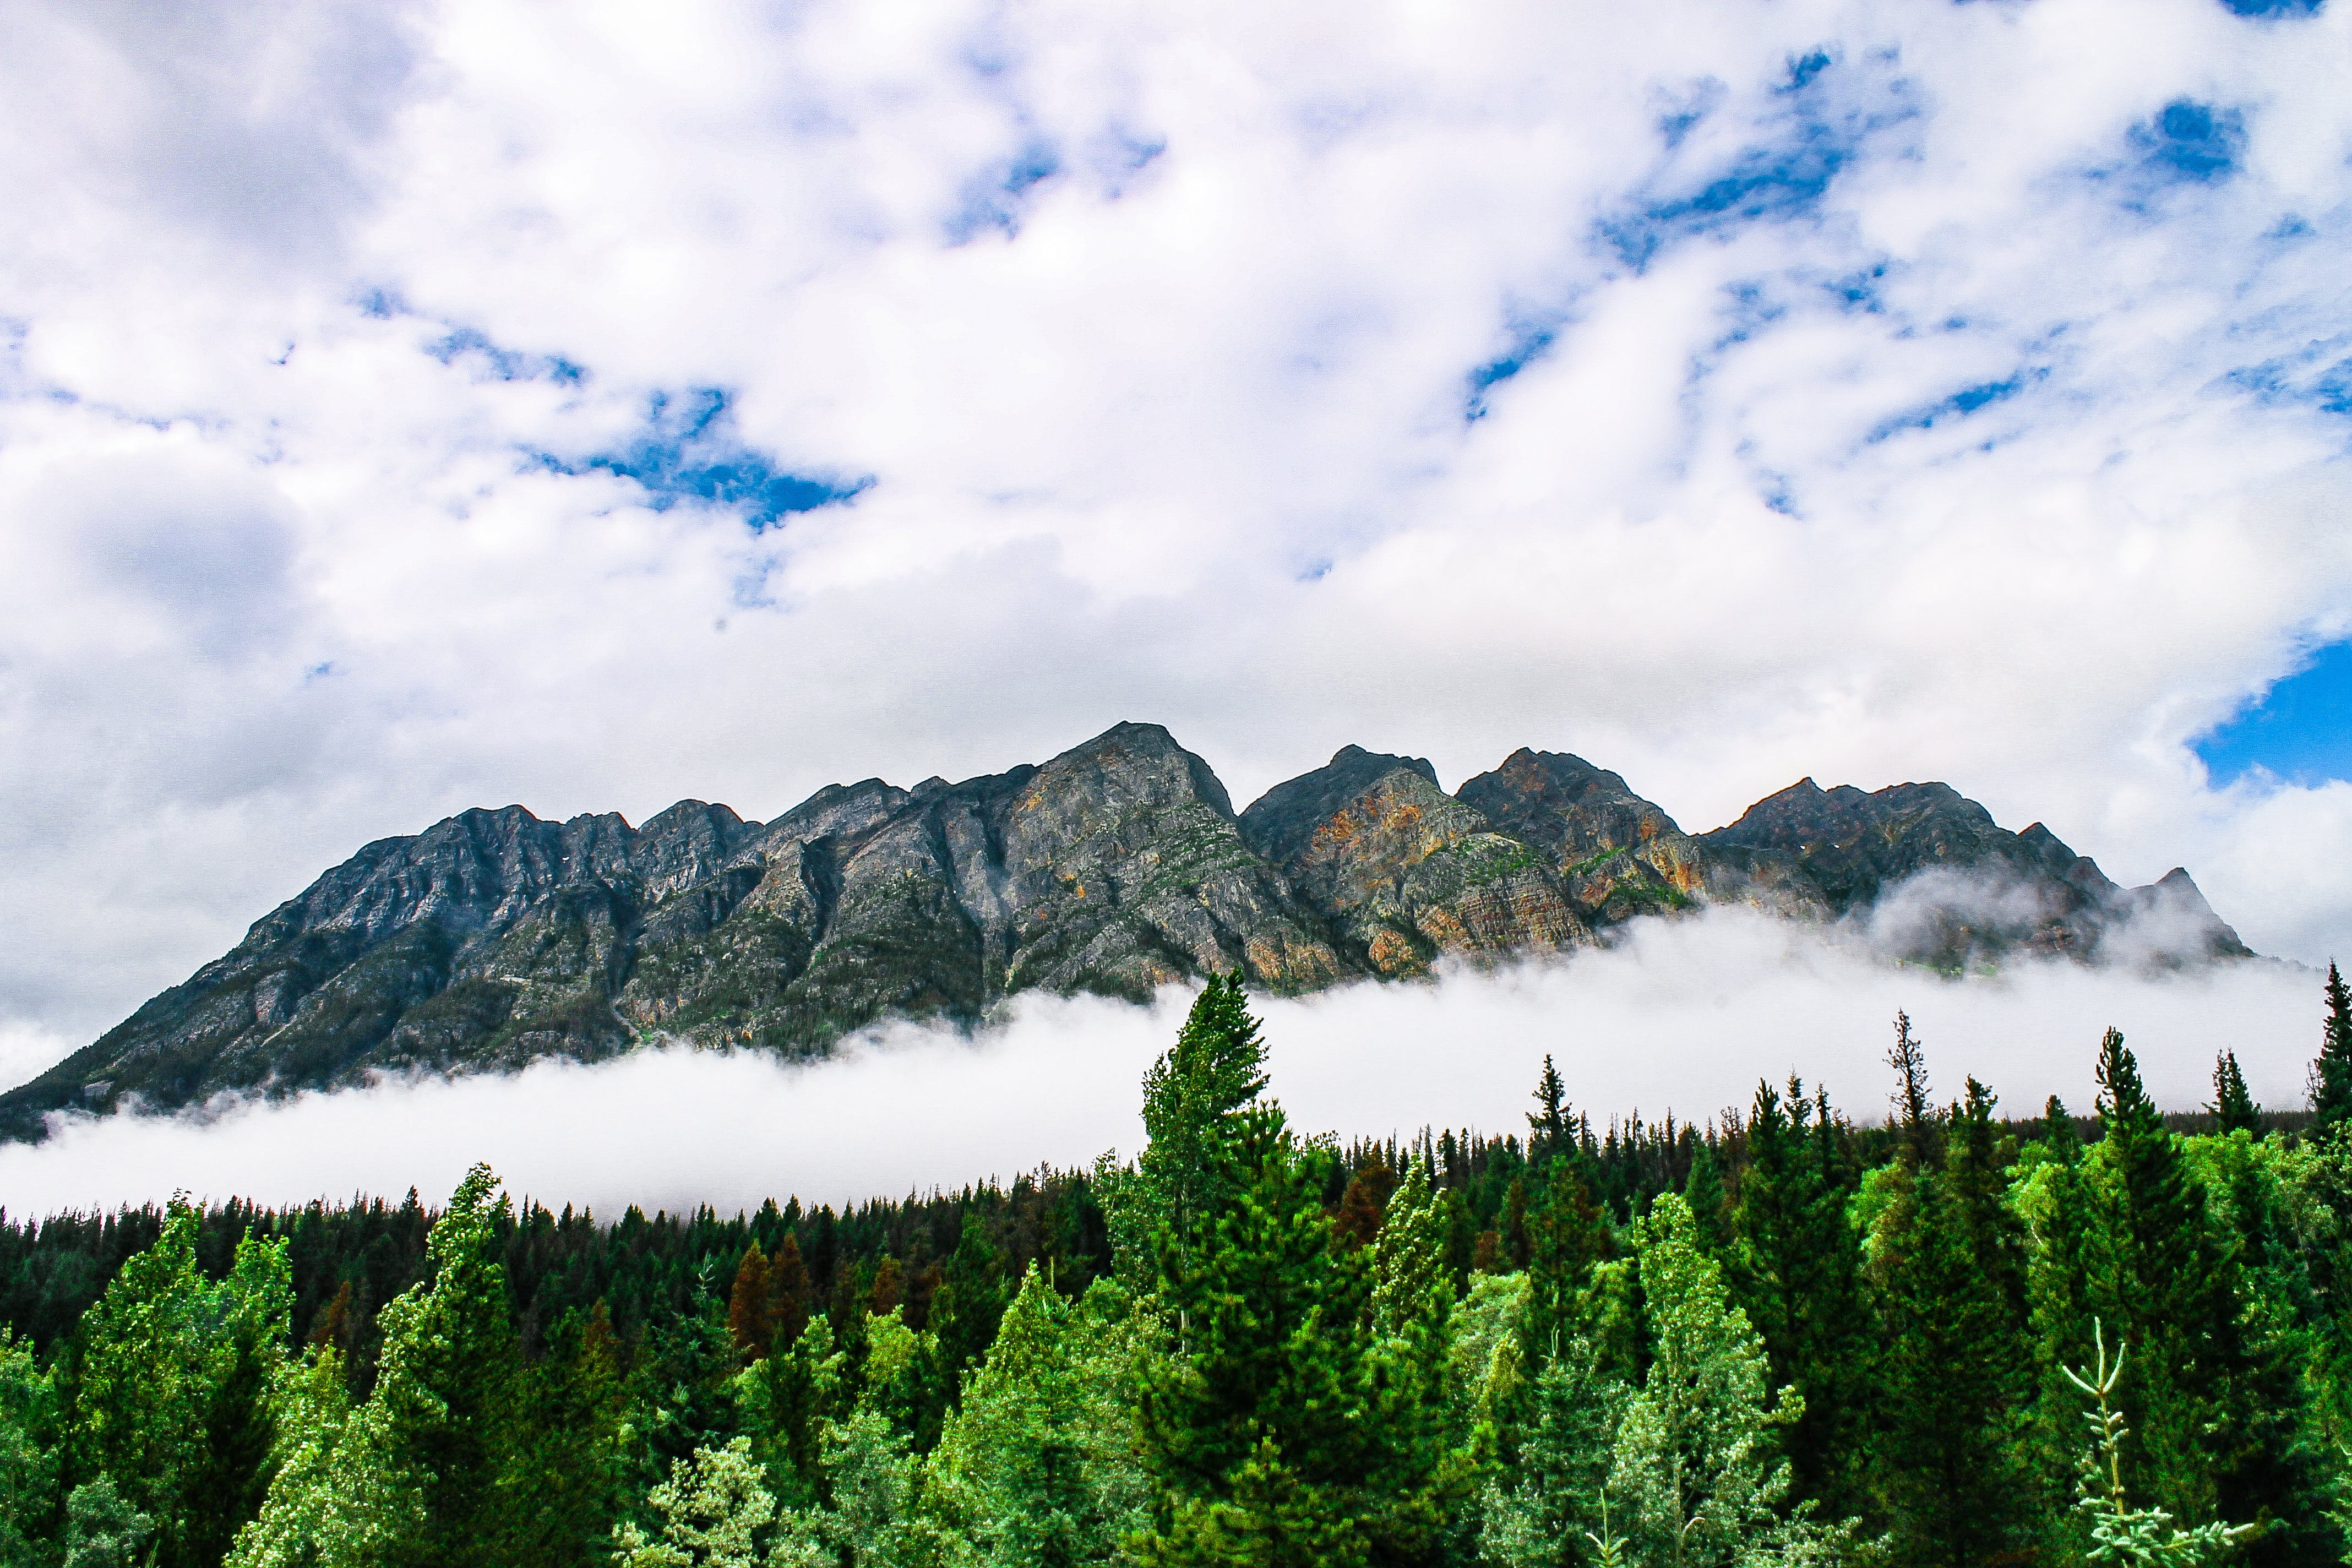 Scenic View of Mountain and Forest